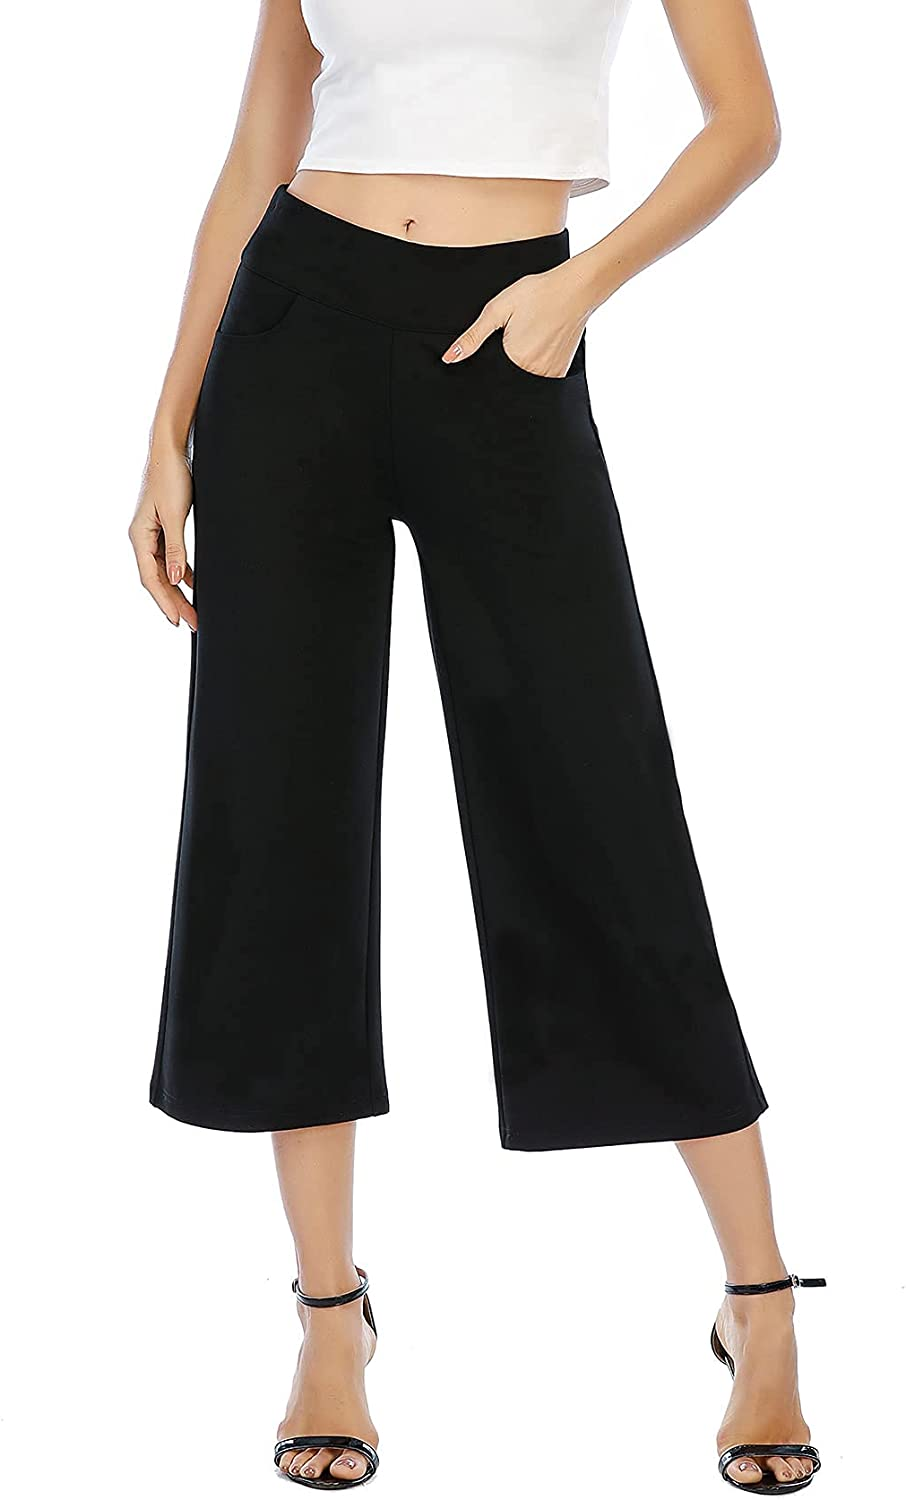 neezeelee Black Wide Leg Pants for Women High Waisted Loose Pull on Cropped Dress Pants Business Casual Work with Pockets